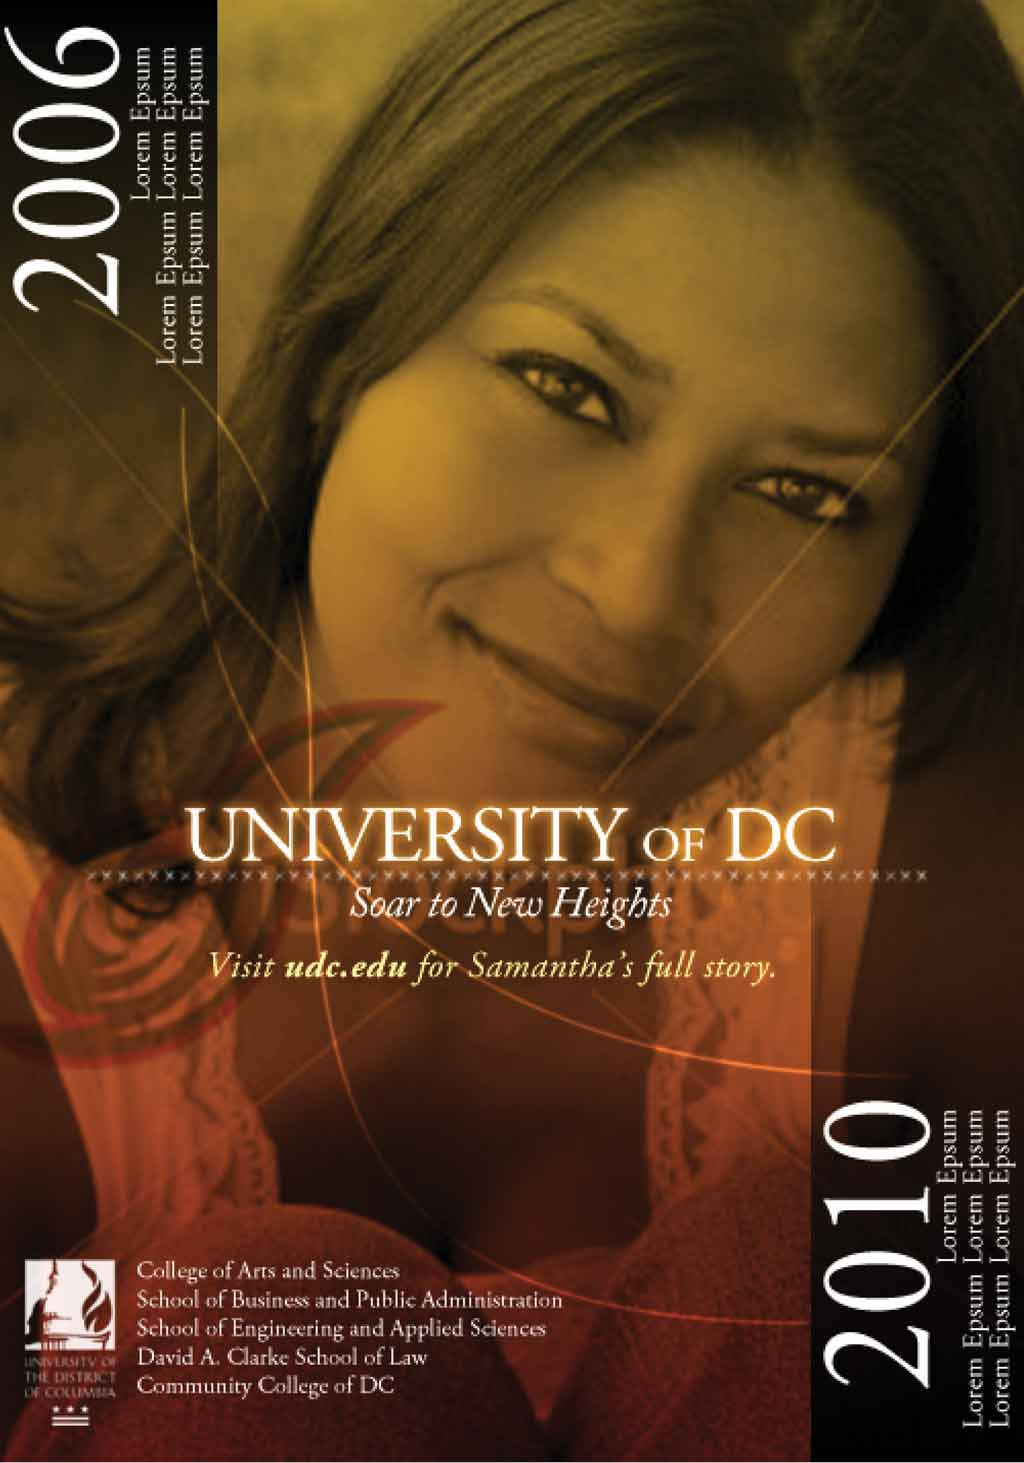 University of the District of Columbia UDC AD Campaign